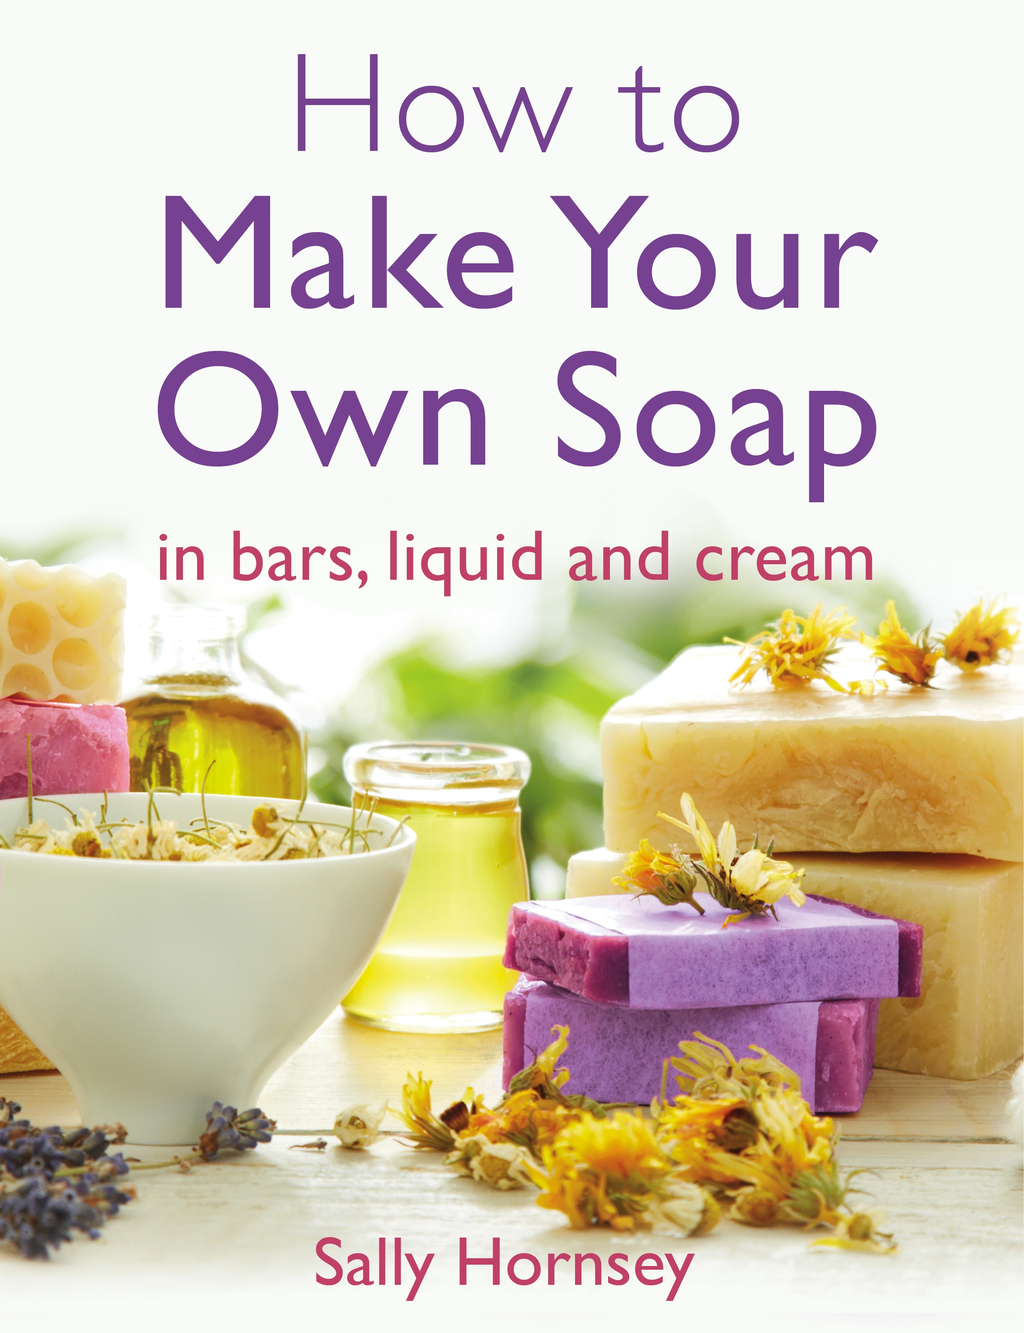 How To Make Your Own Soap ? in traditional bars,  liquid or cream